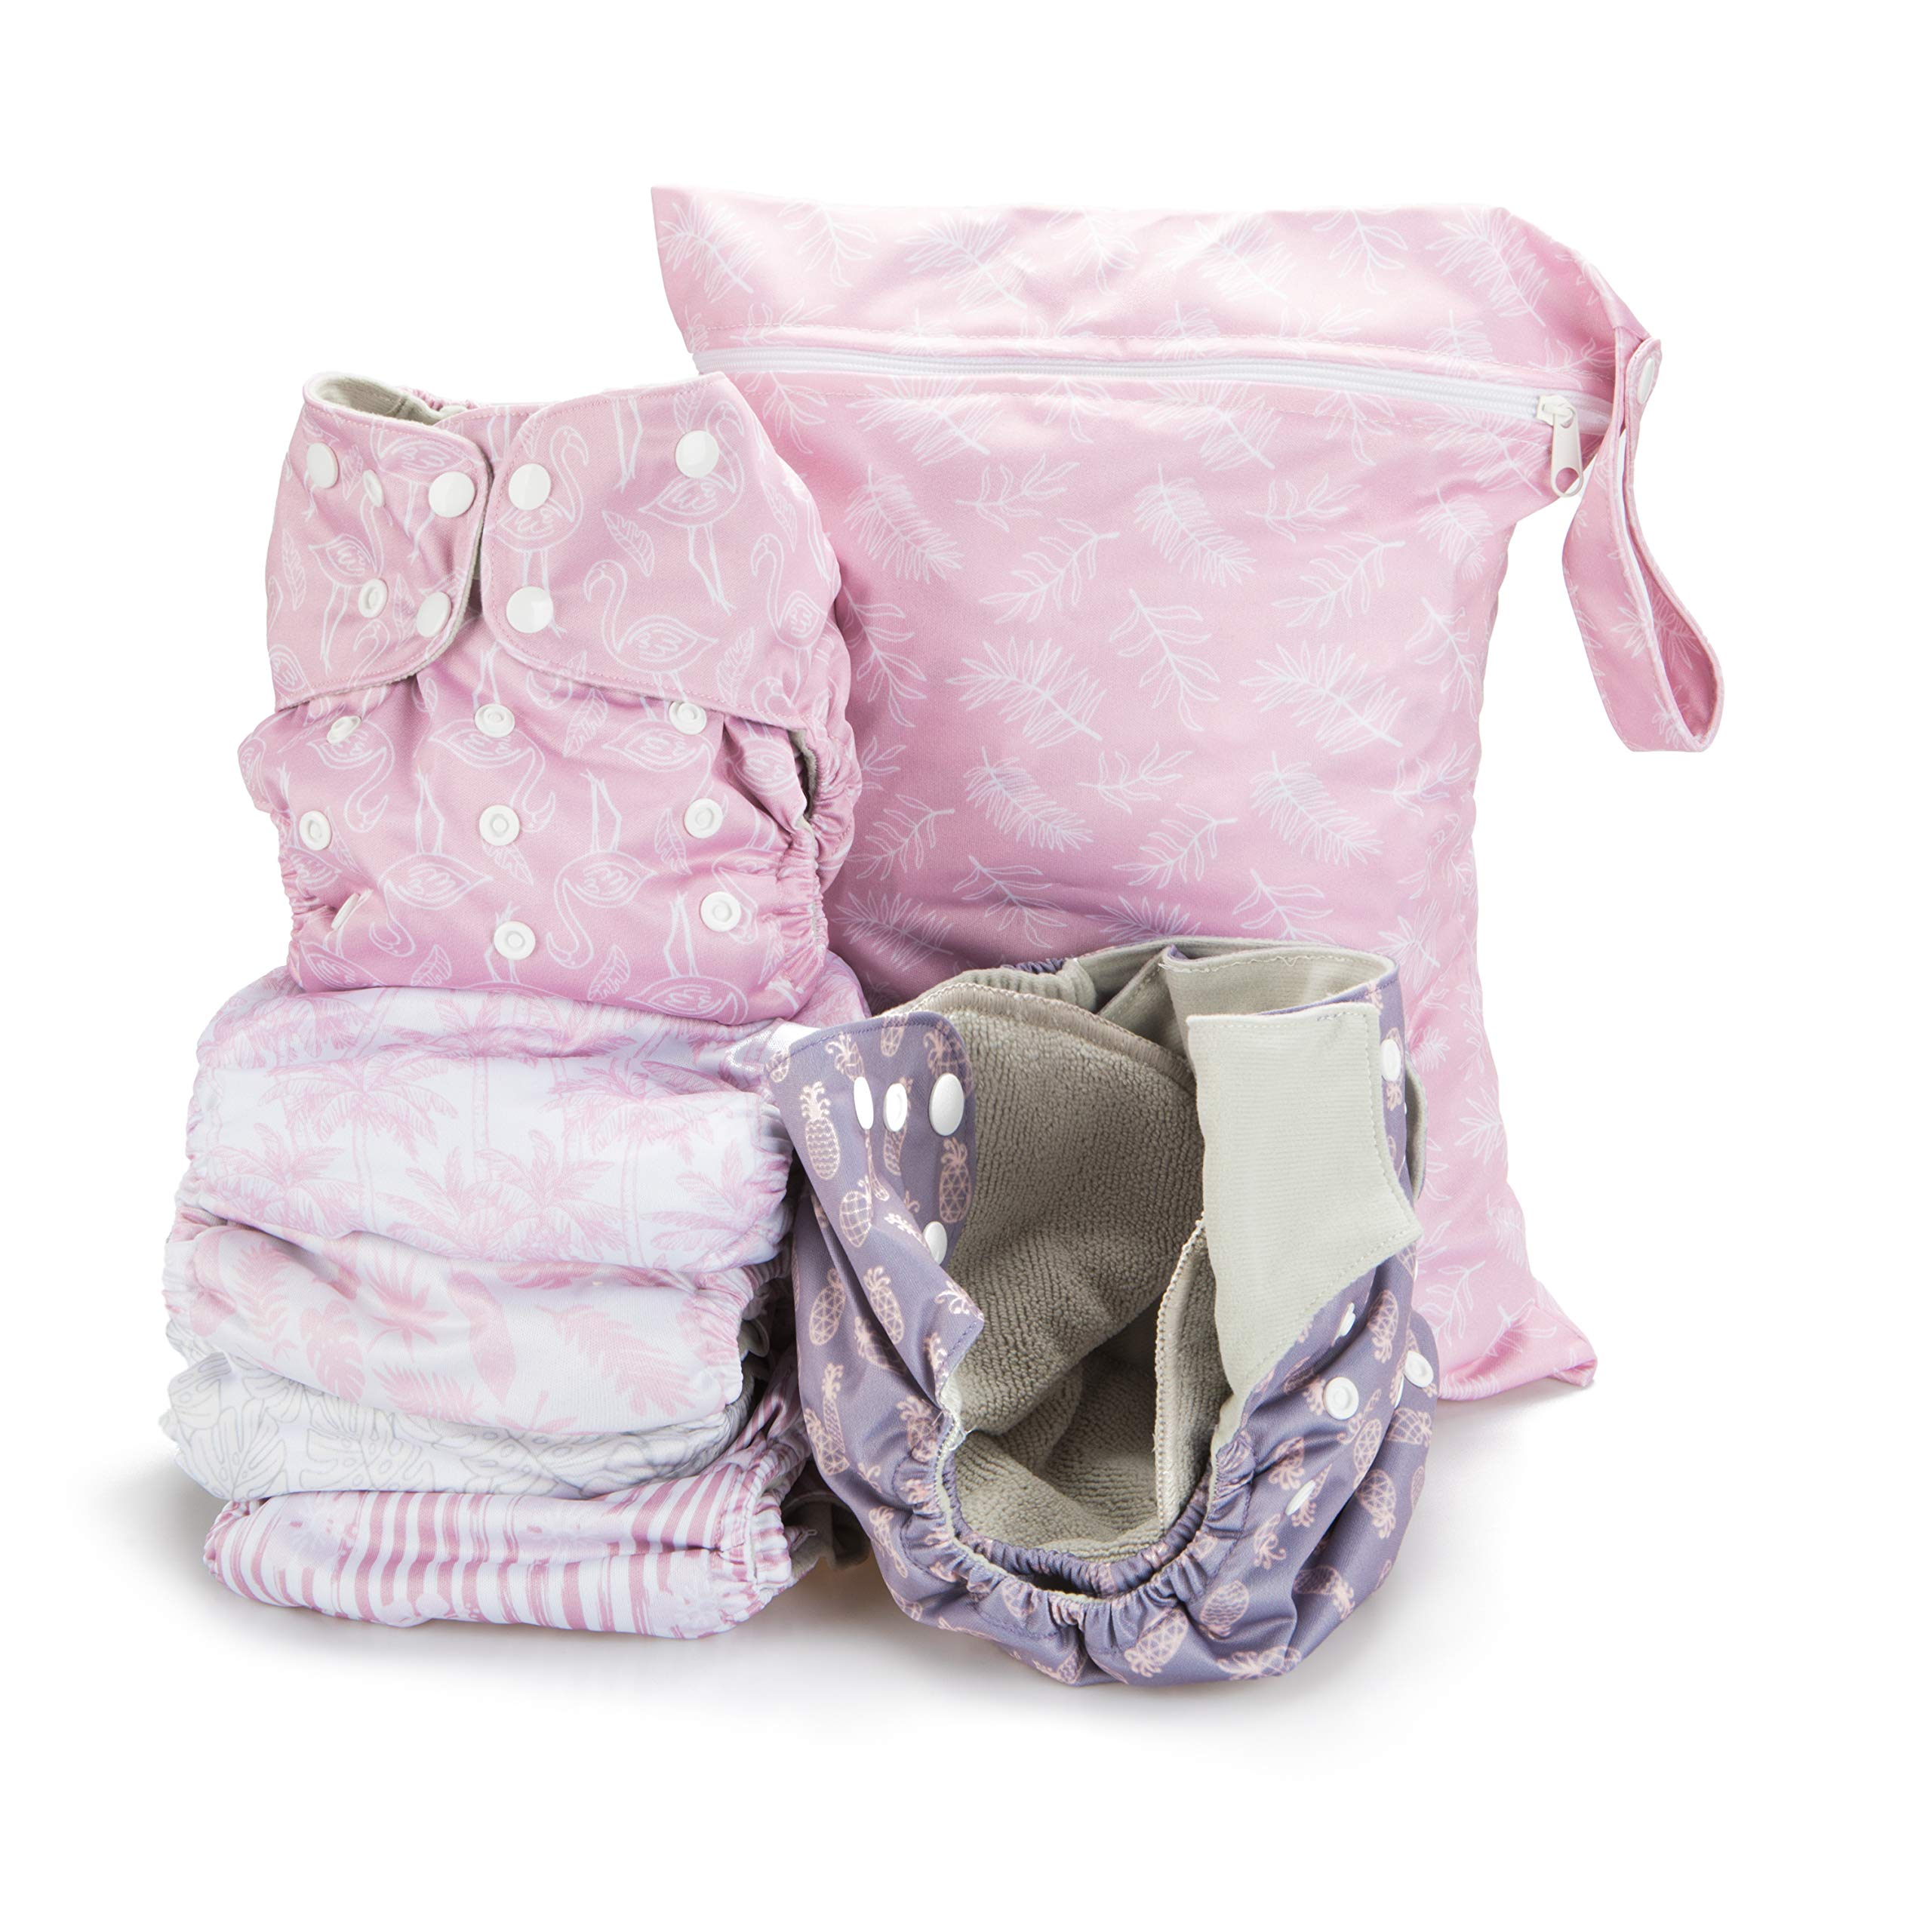 Simple Being Reusable Cloth Diapers- Double Gusset-6 Pack Pocket Adjustable Size-Waterproof Cover-6 Inserts-Wet Bag (Tropical)